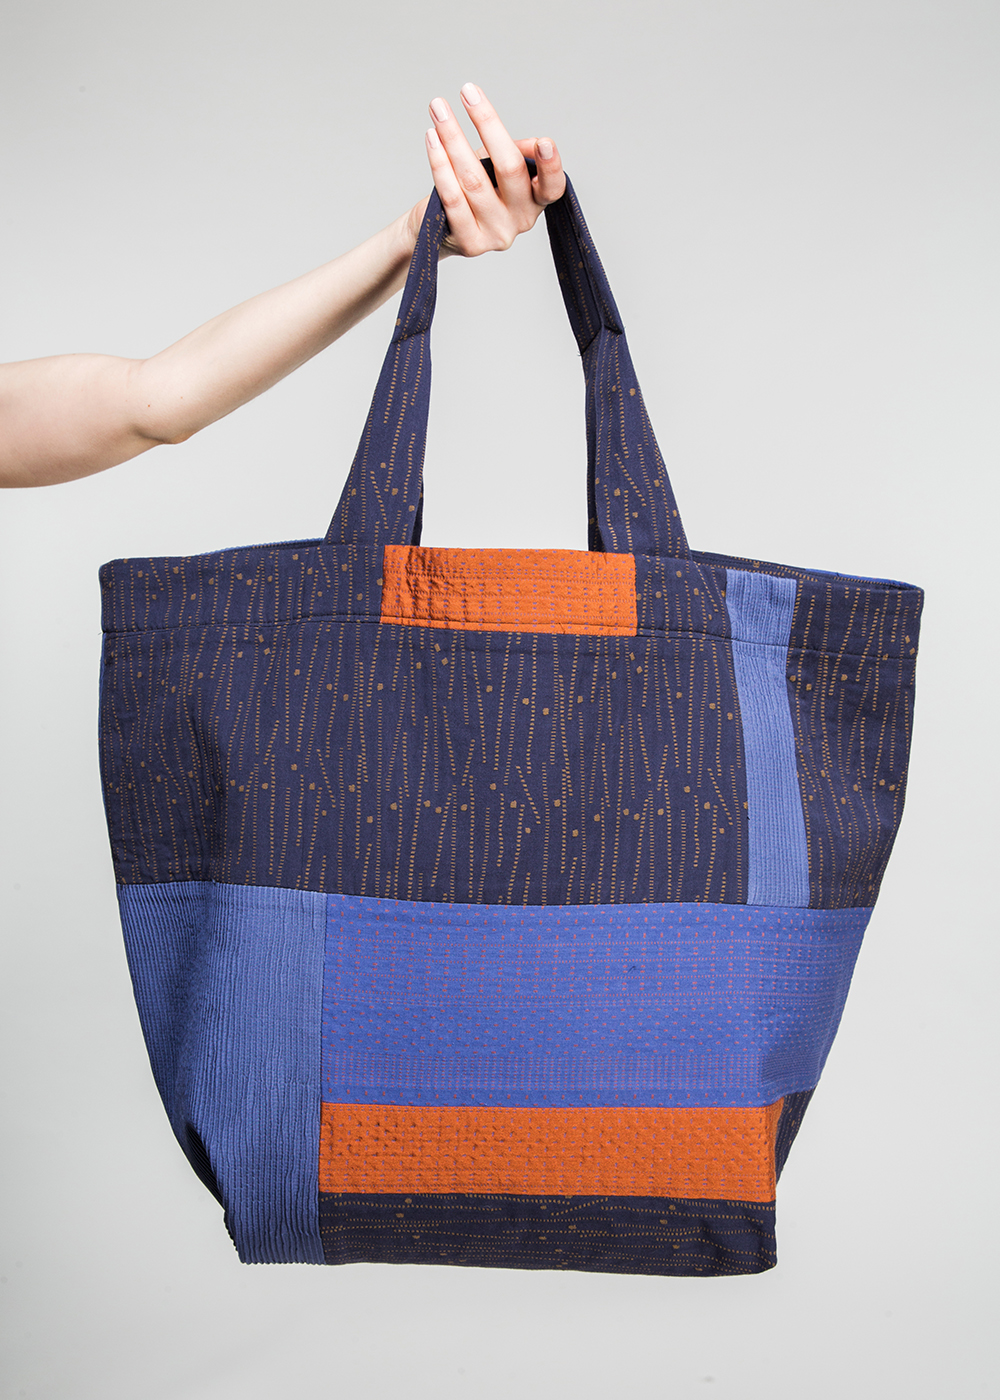 Big Bag in a Patchwork of Blue and Orange Contemporary Japanese Cottons and Nuno Textiles  $495